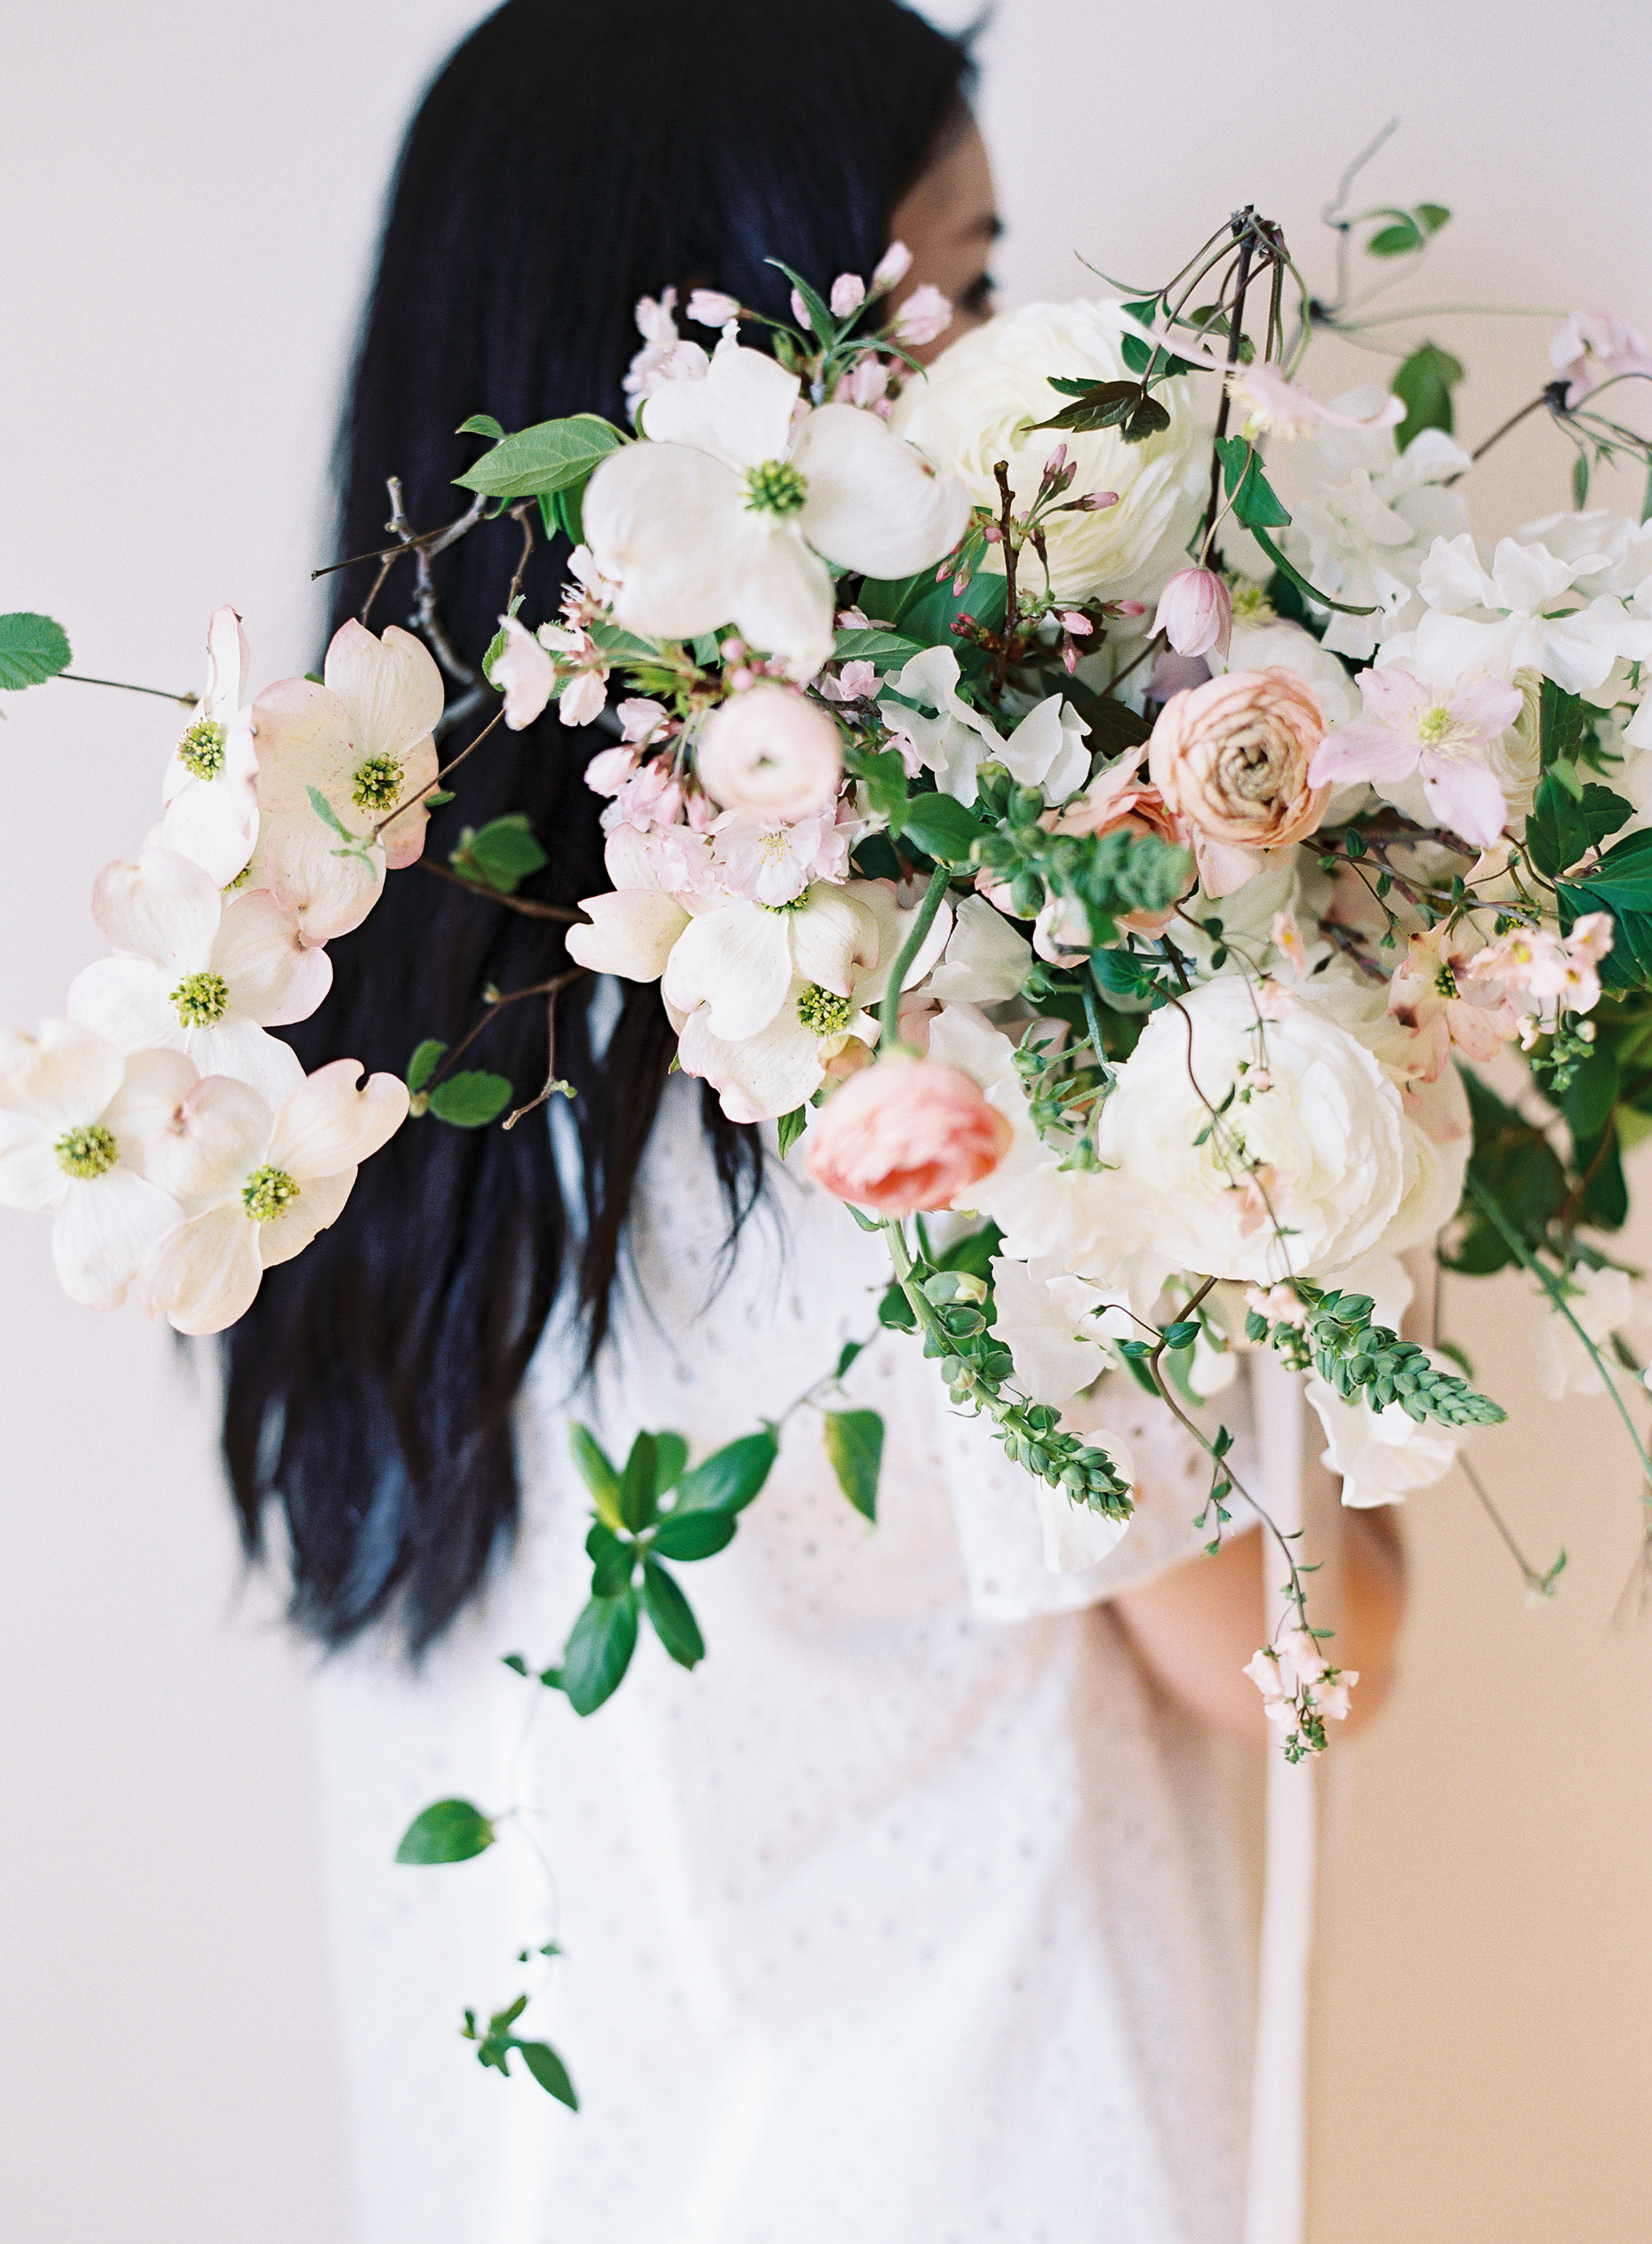 Meghan Mehan Photography | Fine Art Film Wedding Photographer | California | San Francisco | Napa | Sonoma | Santa Barbara | Big Sur | Los Angeles | Destination Wedding Photographer 024.jpg